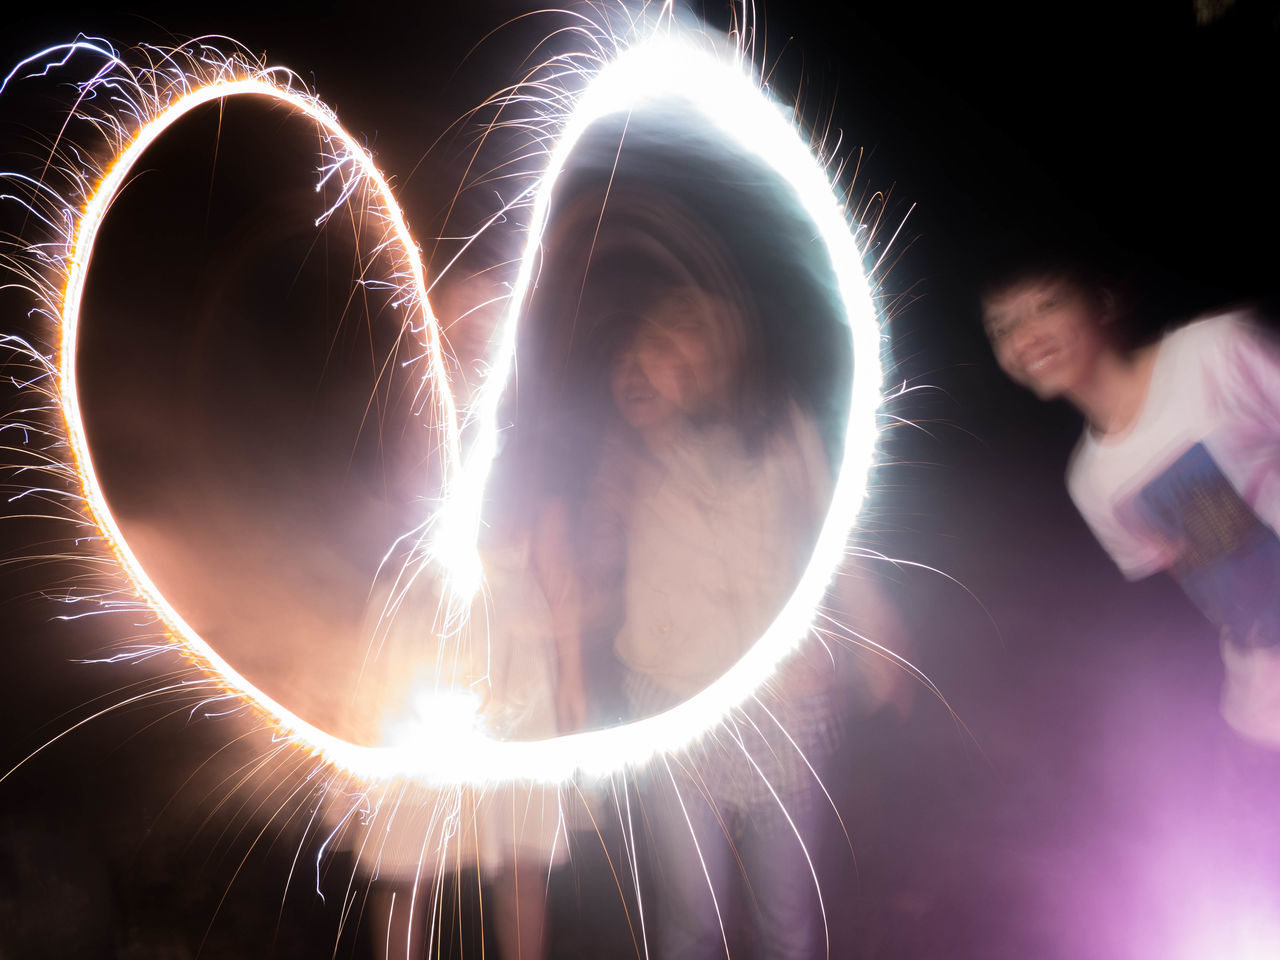 real people, one person, long exposure, illuminated, night, leisure activity, men, motion, lifestyles, sparkler, playing, standing, technology, women, indoors, young women, young adult, close-up, people